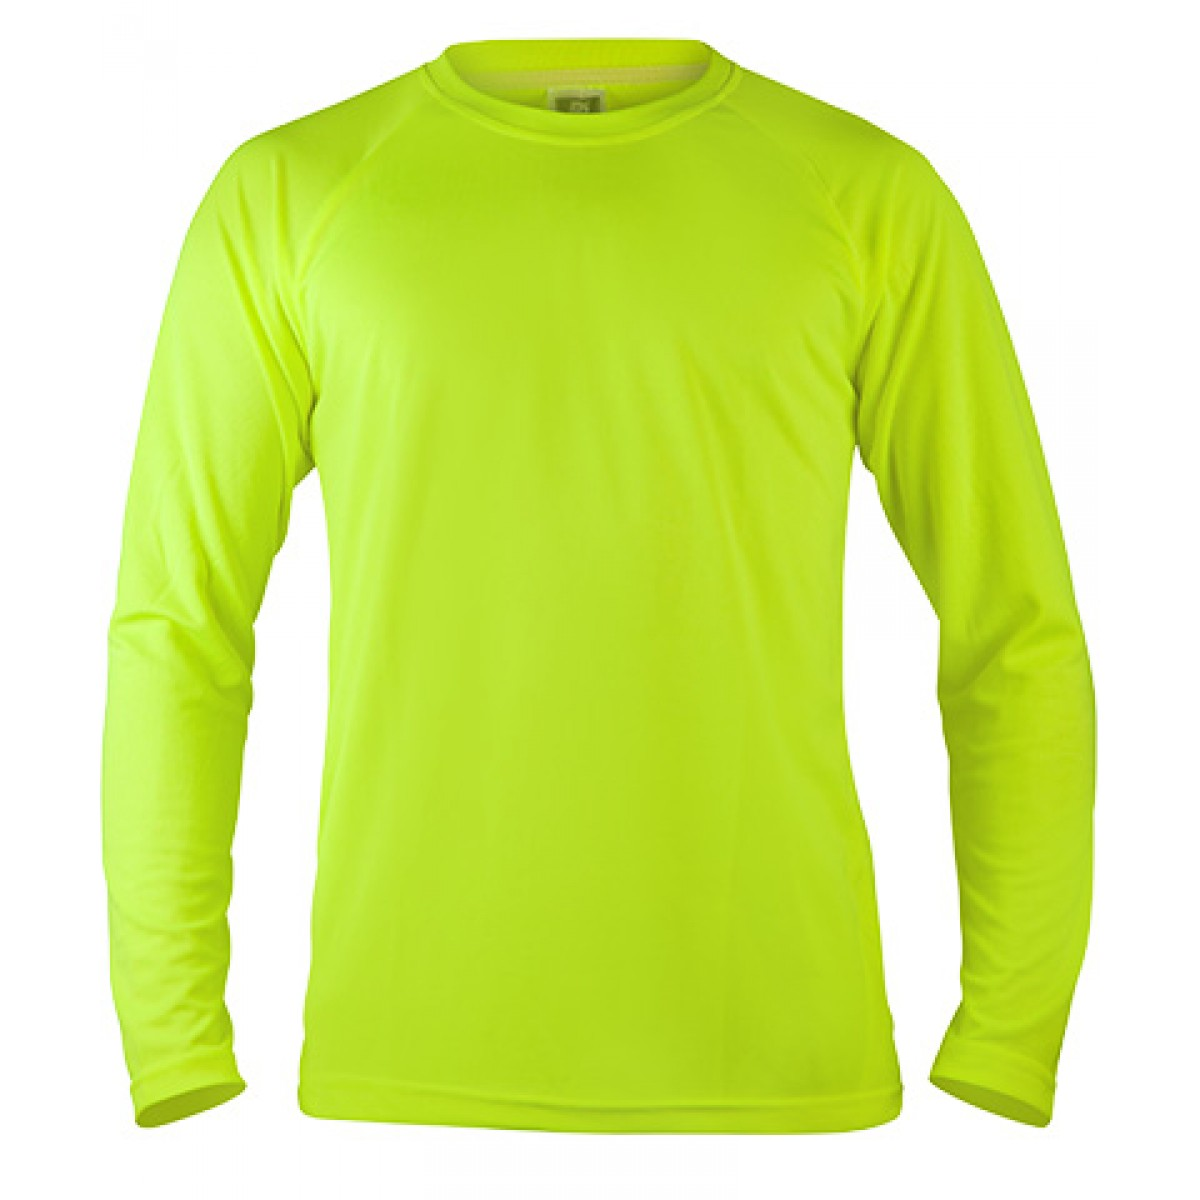 Long Sleeve Performance -Safety Green-YS